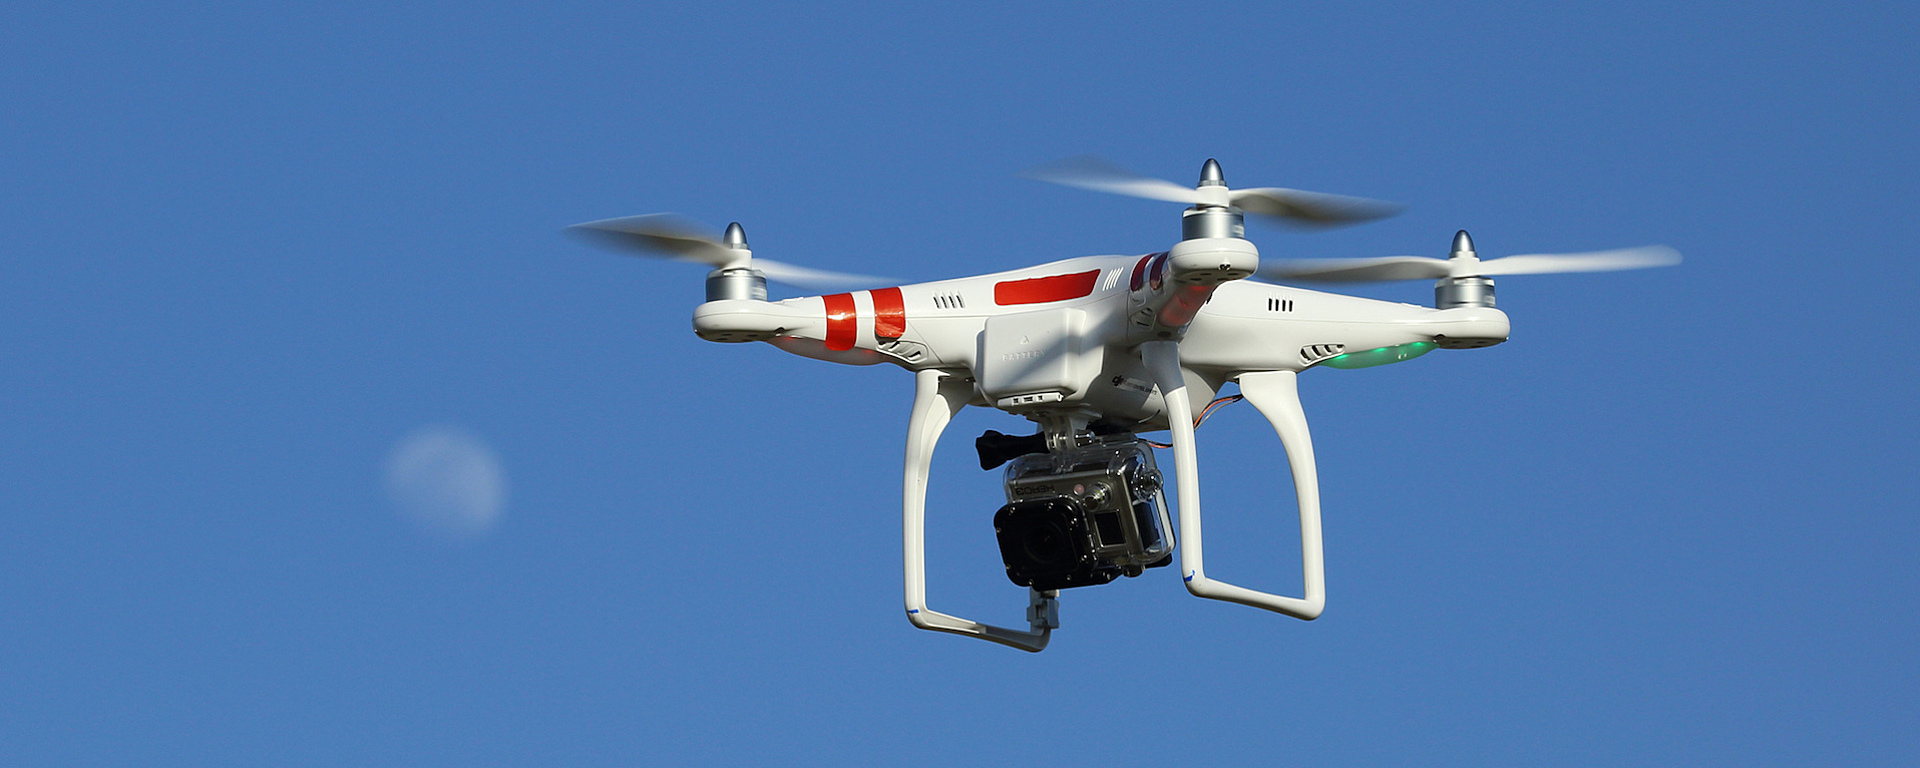 5 Industries That Will Be Changed by Unmanned Aircraft Systems